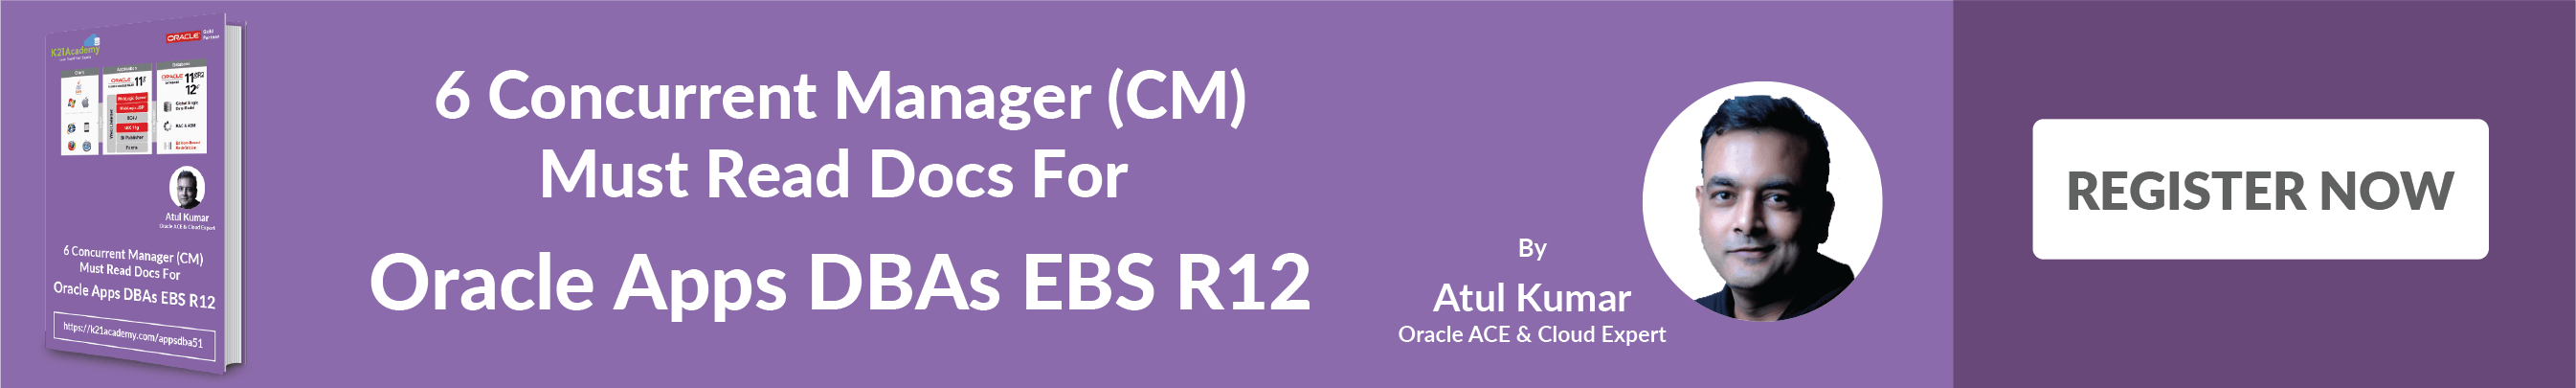 Get Docs for Oracle Apps DBA